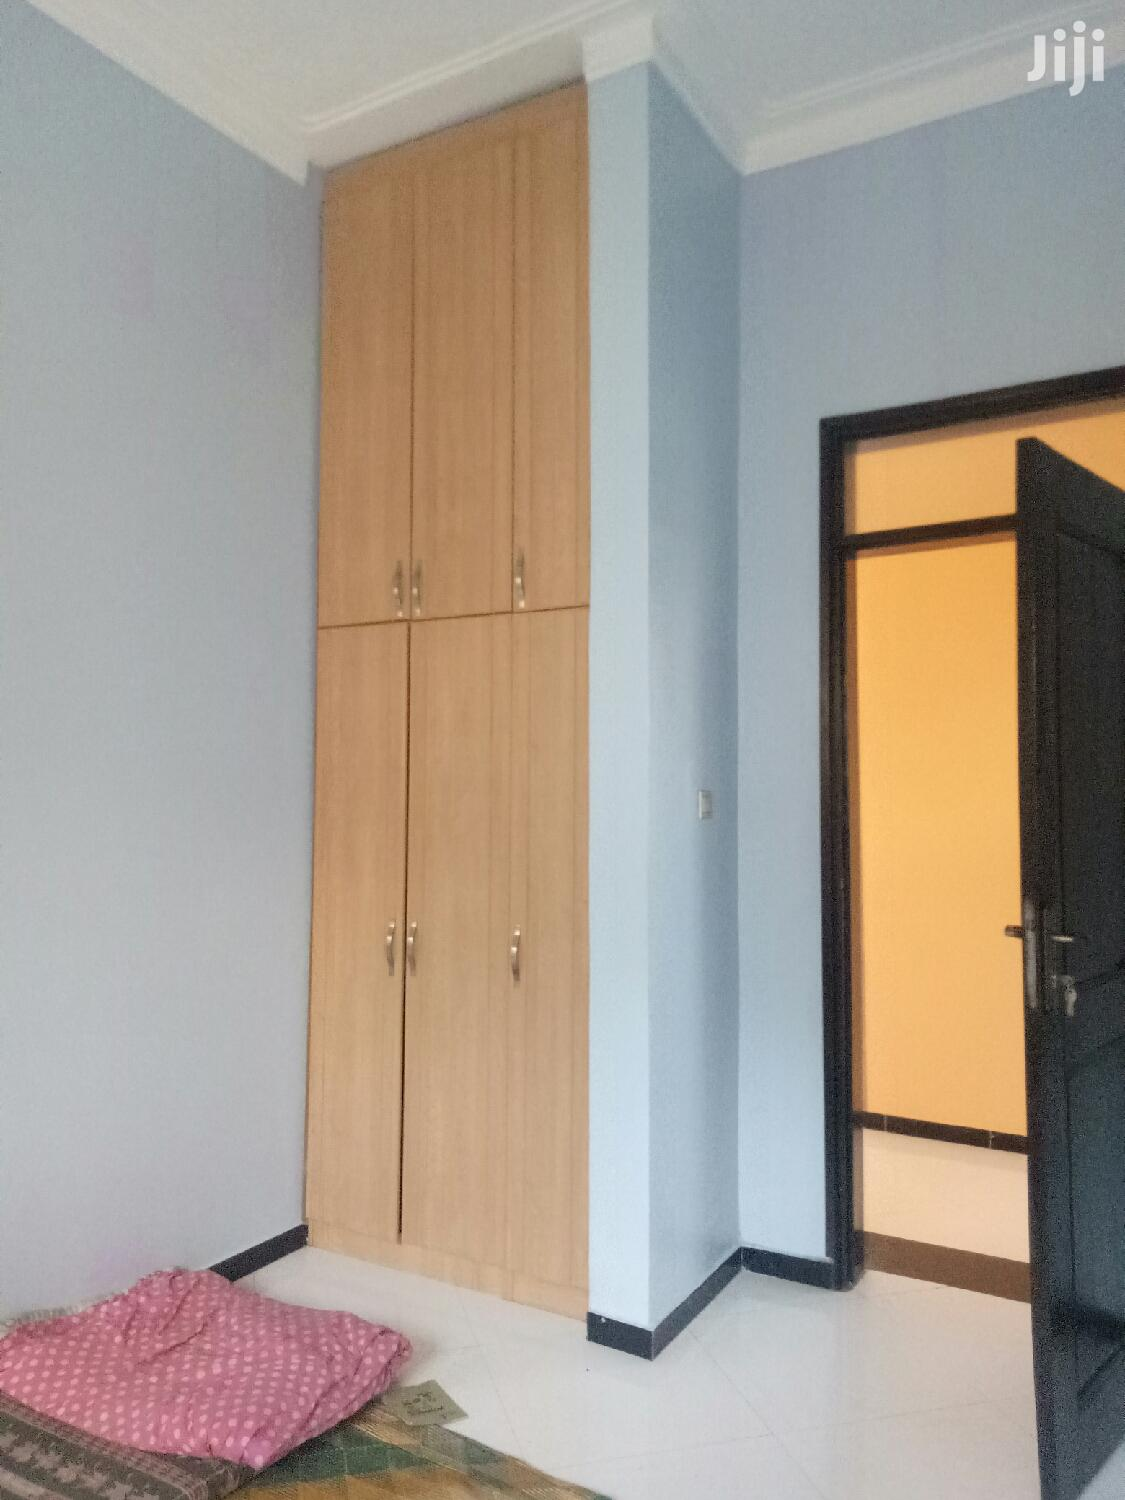 Archive: Kira 3bedroom Standalone Self Contained at 800k